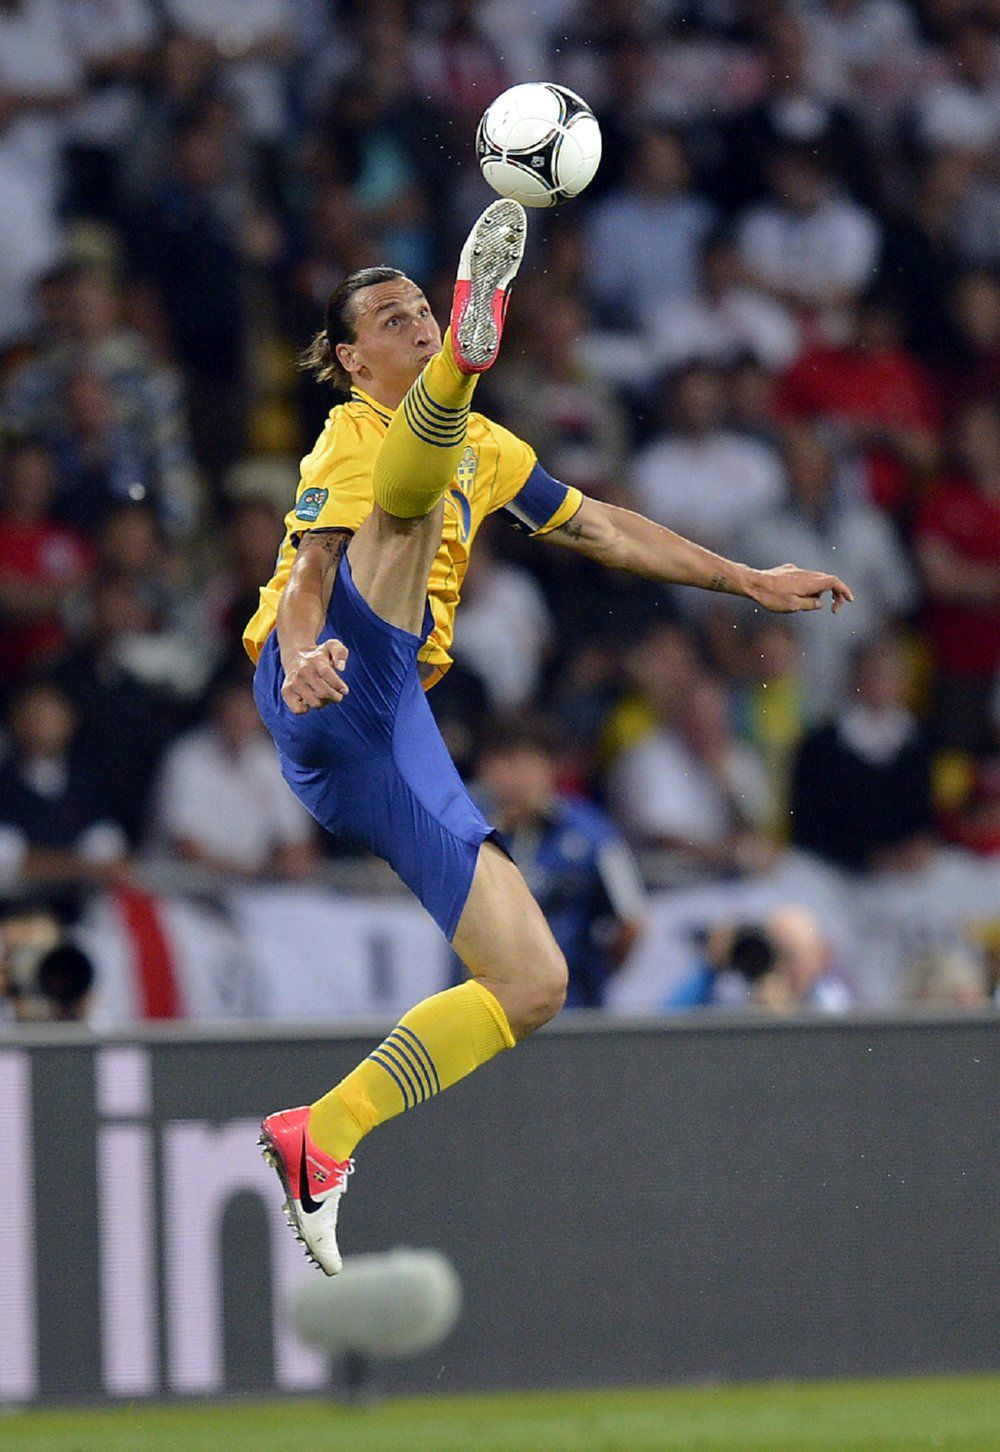 Zlatan Ibrahimovic is doing this that others can t even think of doing. He  is reinventing soccer. Zlatan 01da5ec76563e